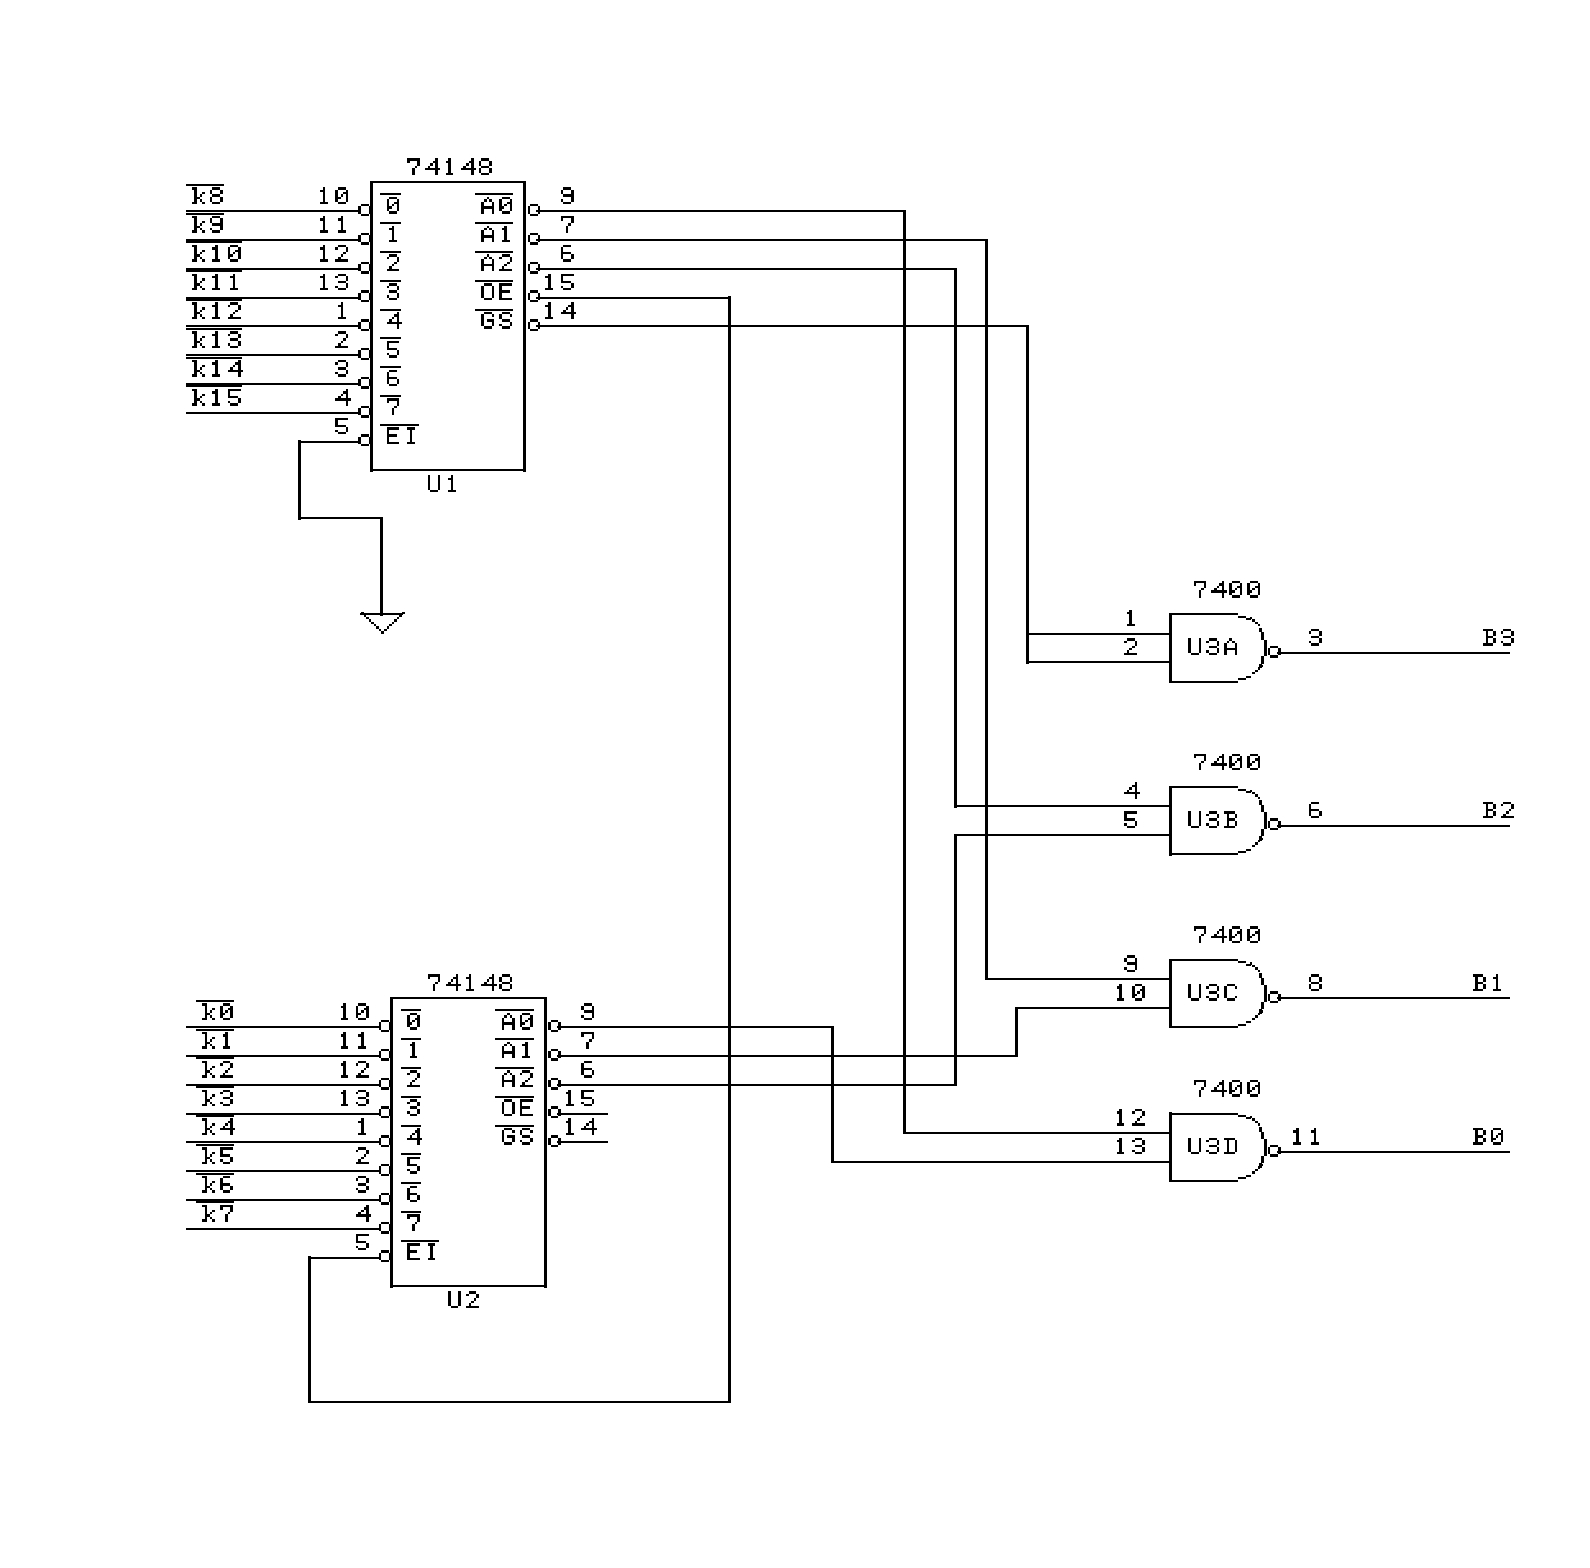 heidenhain encoder wiring diagram Download-Heidenhain Encoder Wiring Diagram Beautiful Optical Incremental Encoder Controls Robots and Drones Wiring 17-b